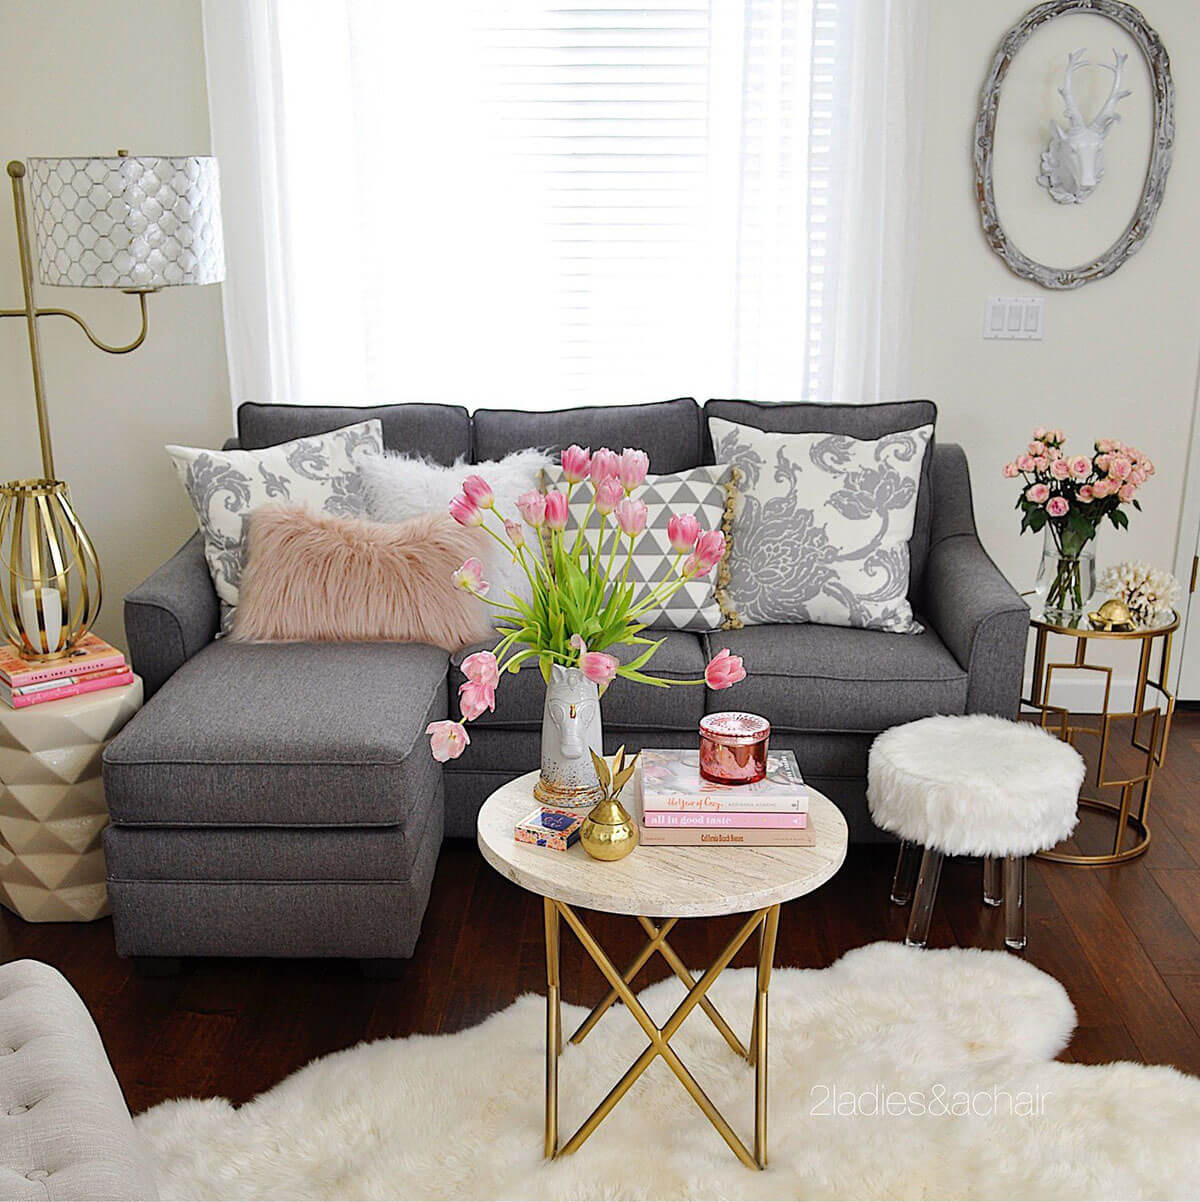 Best ideas about Small Living Room . Save or Pin 25 Best Small Living Room Decor and Design Ideas for 2019 Now.